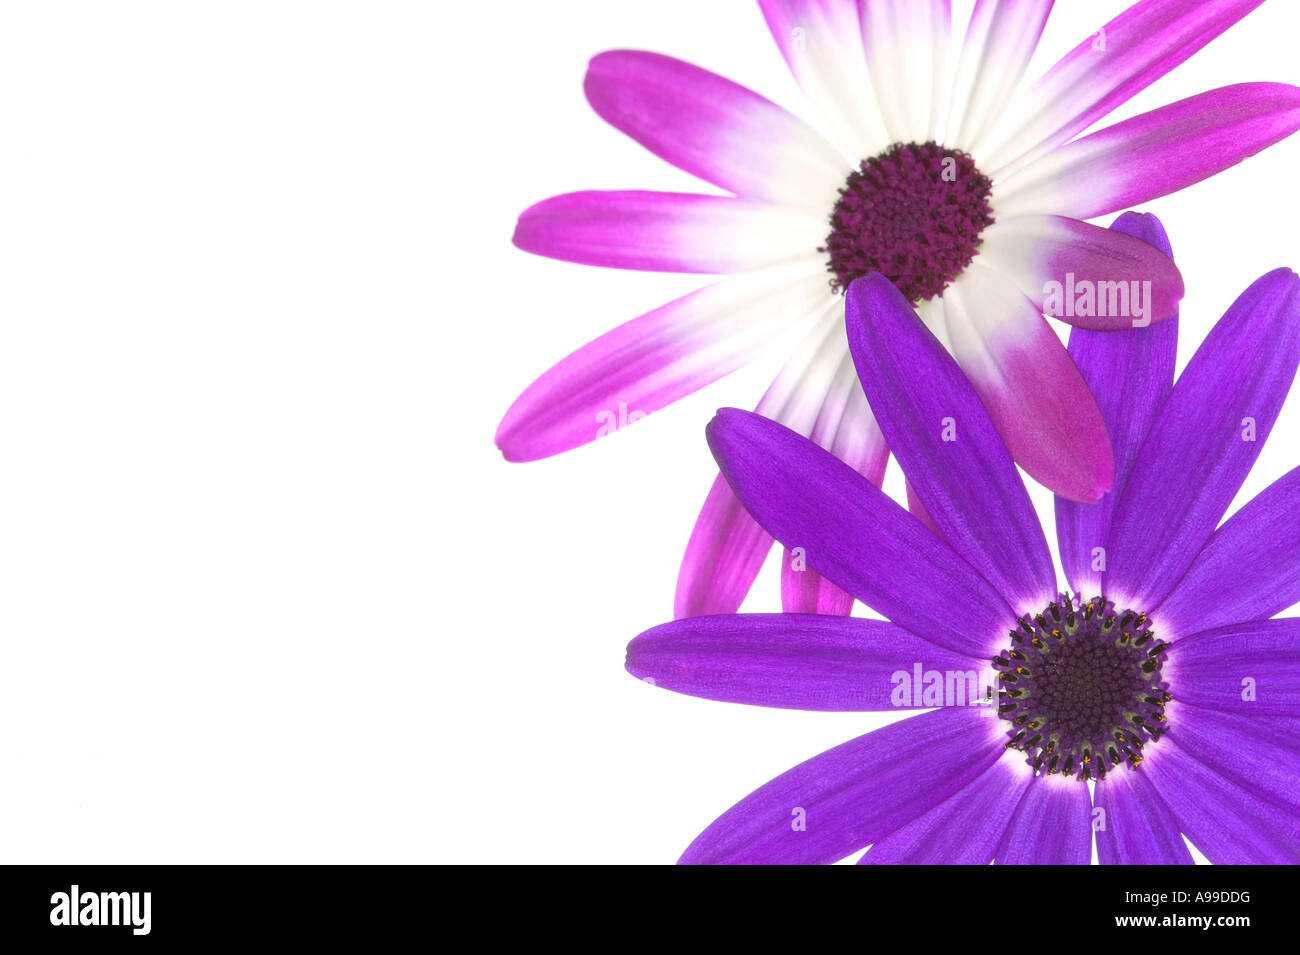 Two Senetti flowers isolated on white and framed on the right - Stock Image